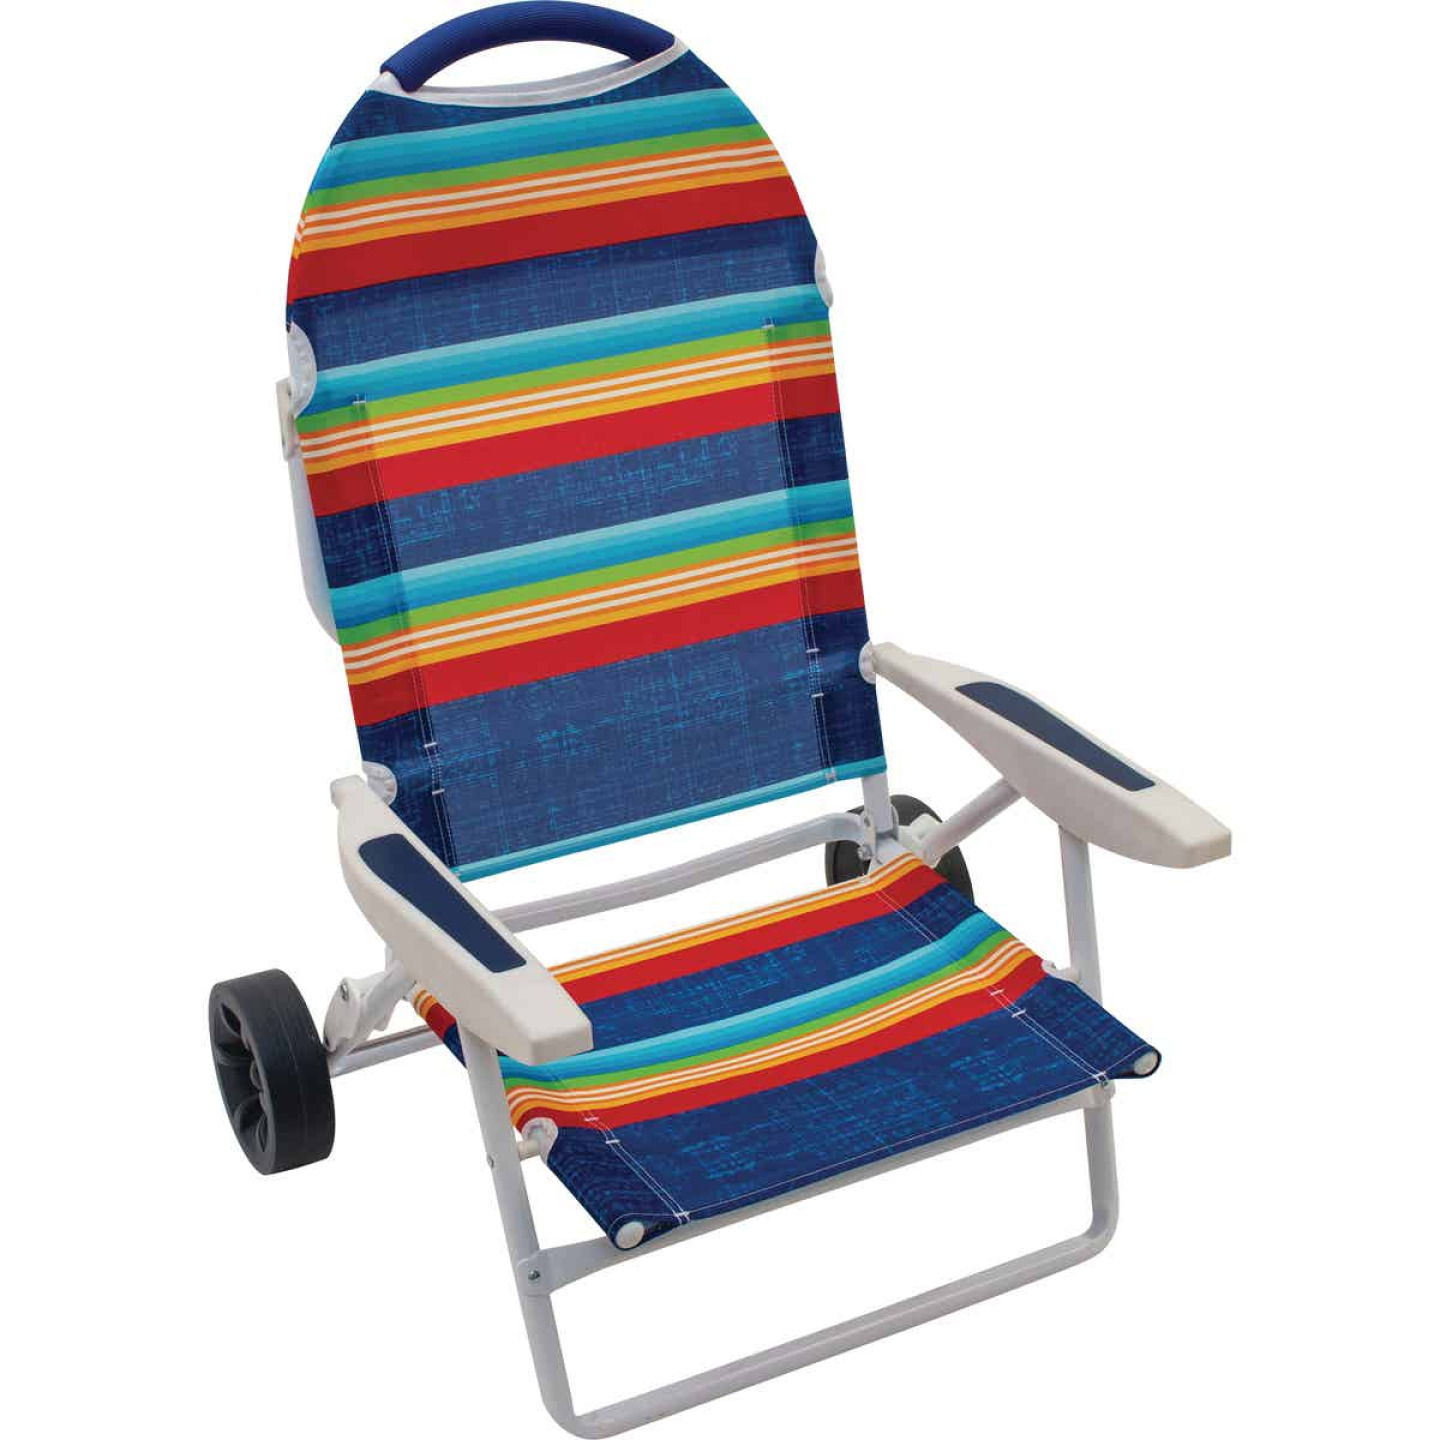 Rio Brands Transporter 5-Position Striped Steel Folding Beach Chair Image 1